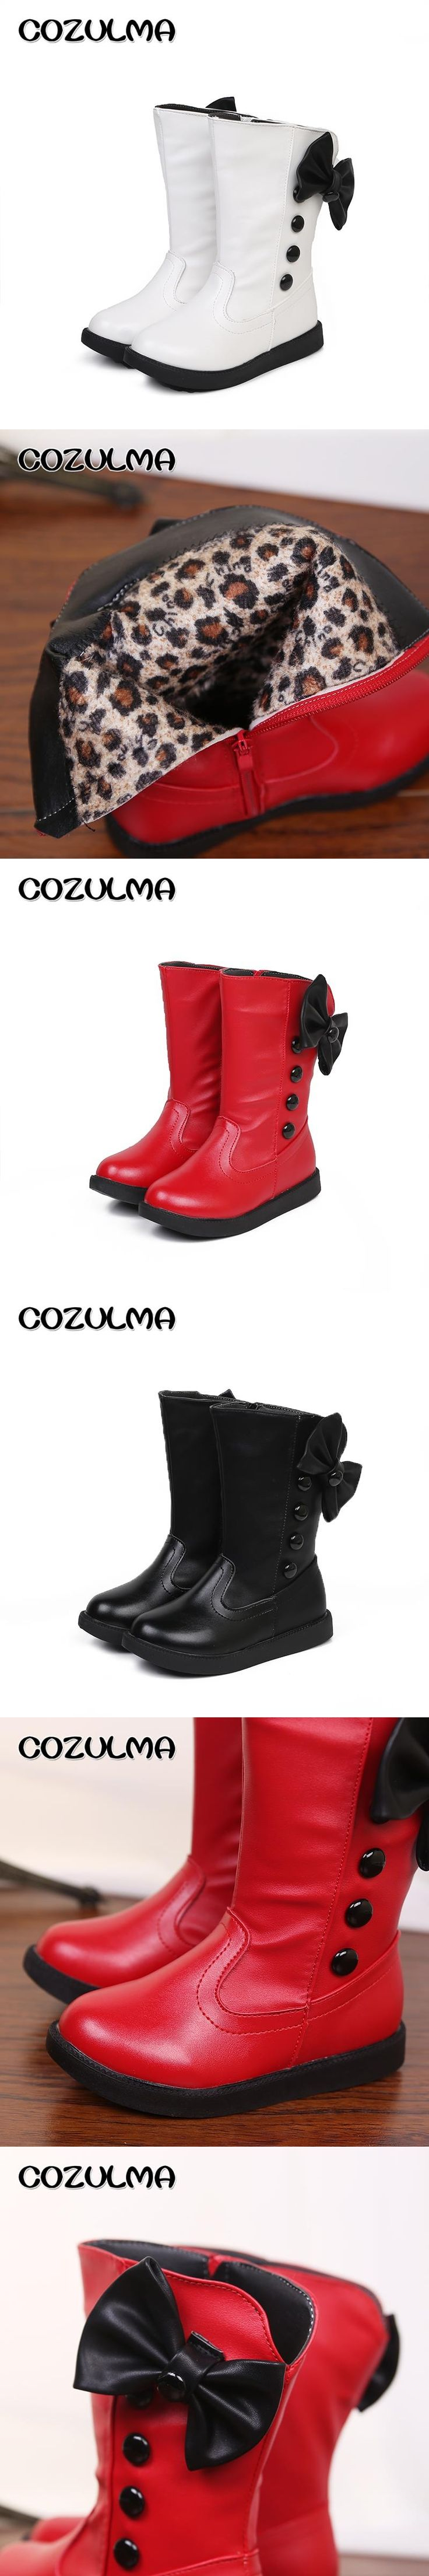 COZULMA Girls Boots Kids Winter Boots With  Warm Plush Winter Boots For Kids Girls High Cotton-Padded Shoes Girls Winter Shoes